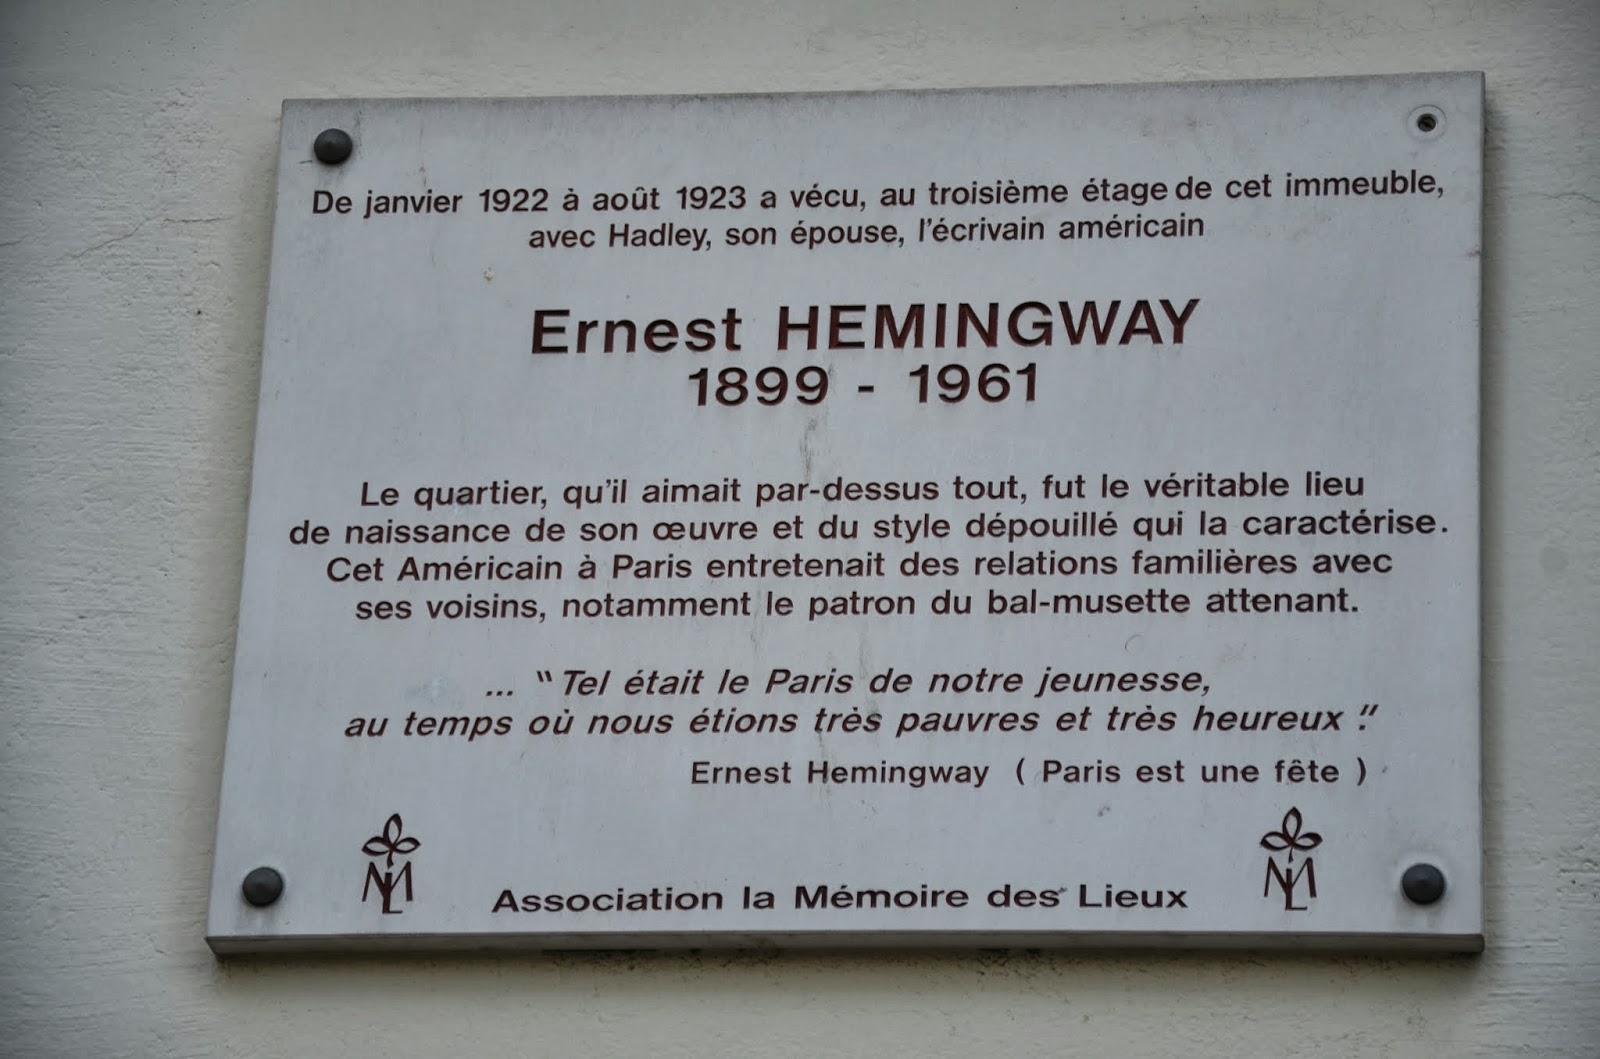 essay on ernest hemingway Noble prize winner ernest hemingway lived a troubled life several marriages, various faiths, and ultimately a losing fight with depression however hemingway left a profound impact on.